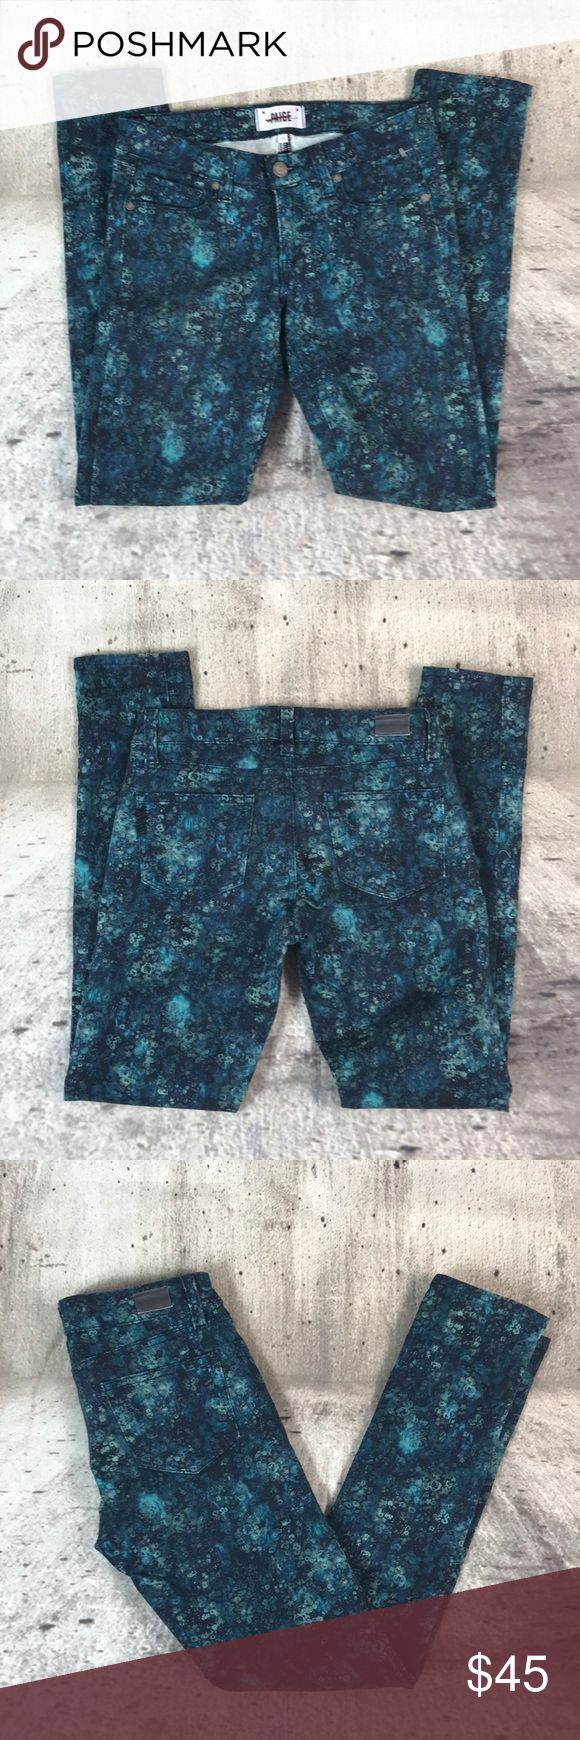 """Paige skyline ankle peg jeans Paige skyline ankle peg jeans cotton and spandex blend inseam 29"""" rise 7.5"""" Anthropologie Jeans Skinny"""